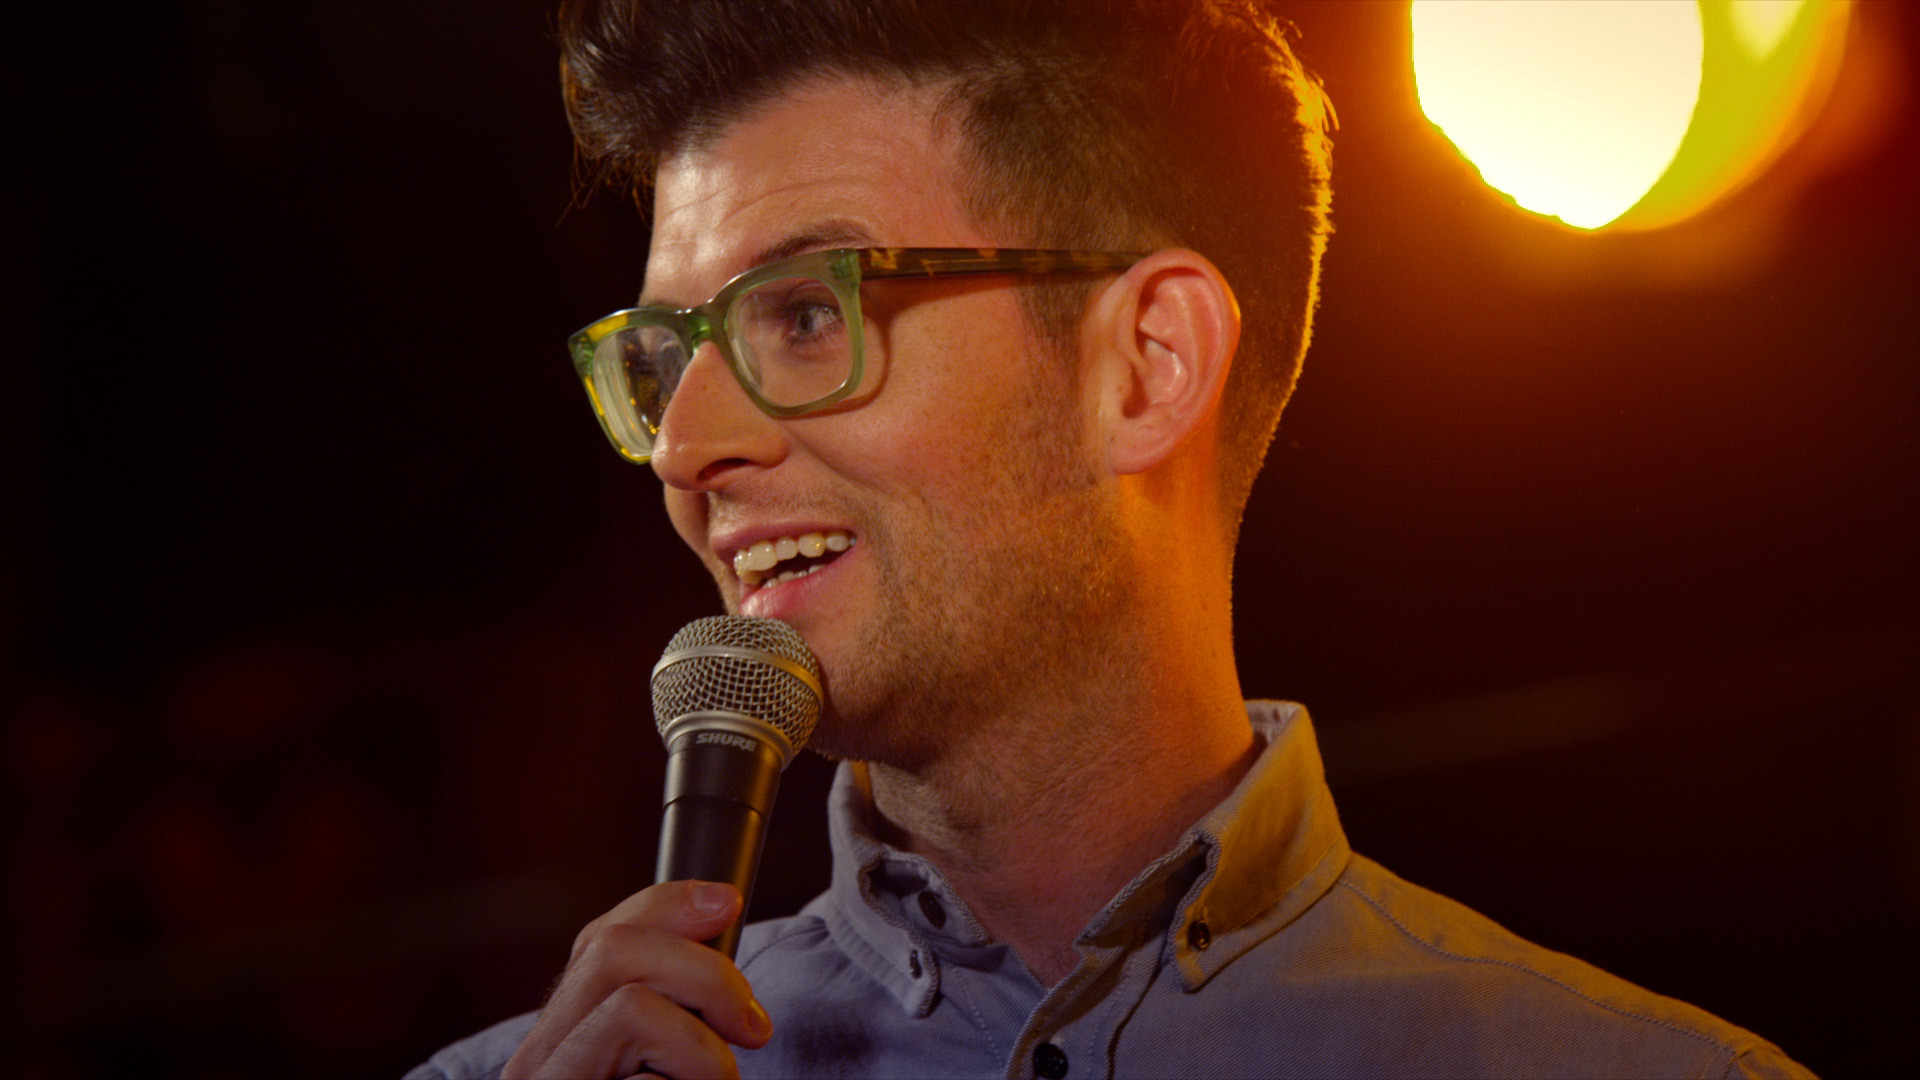 Uncensored - Moshe Kasher Offends Some Jews